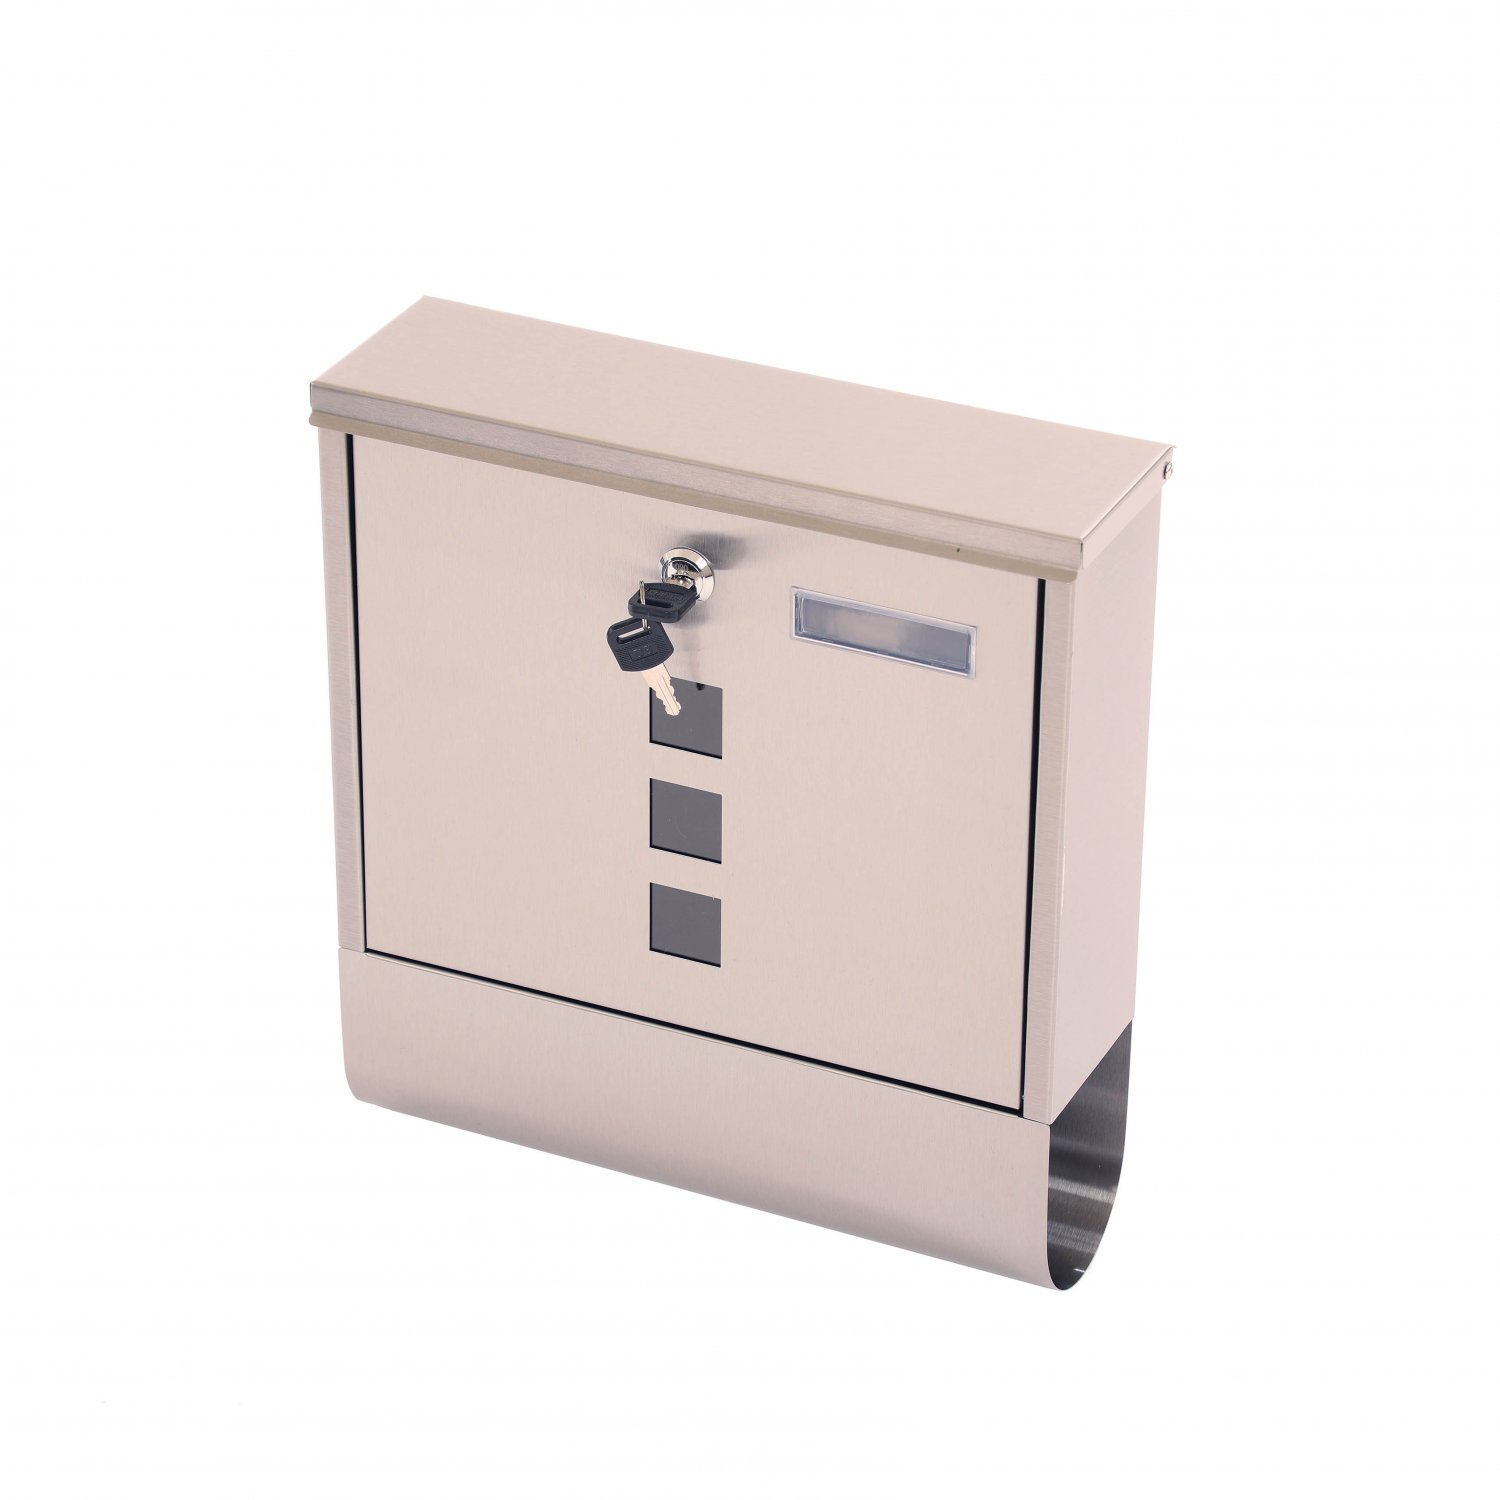 Wall Mounted Stainless Steel Mail Letter Post Box with Newspaper